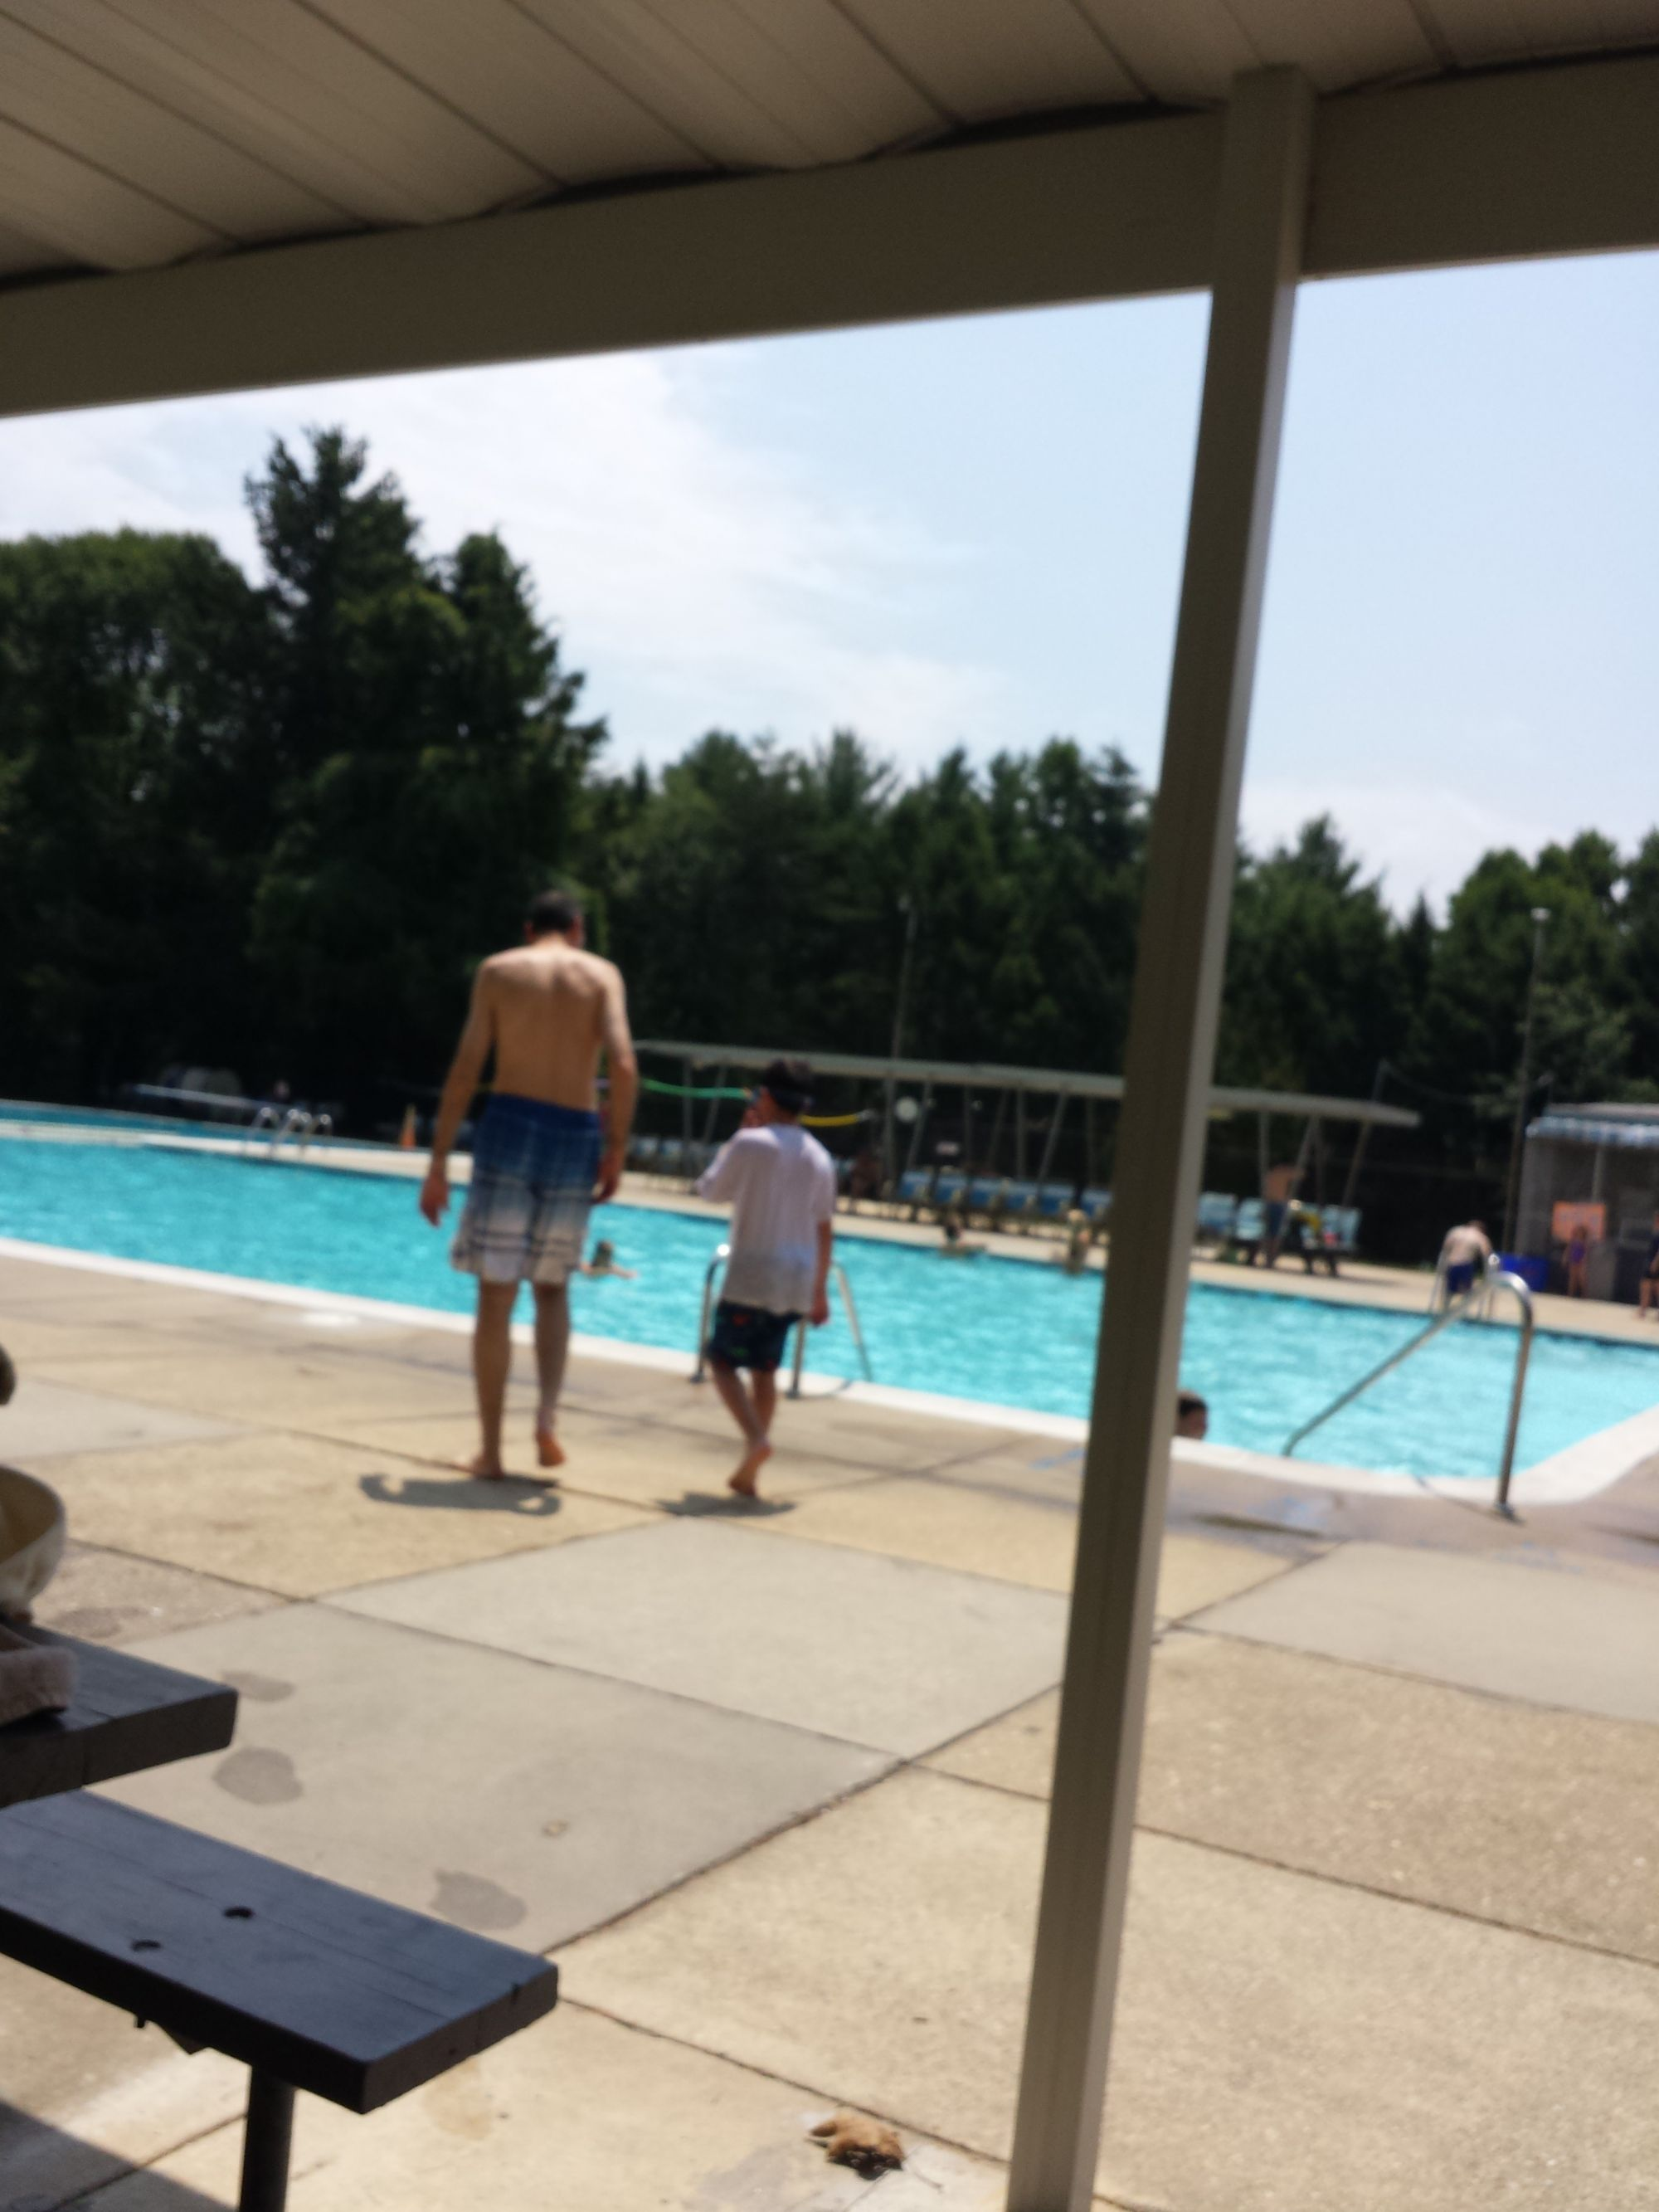 Evonne's husband and older son enjoying the pool membership they were gifted.